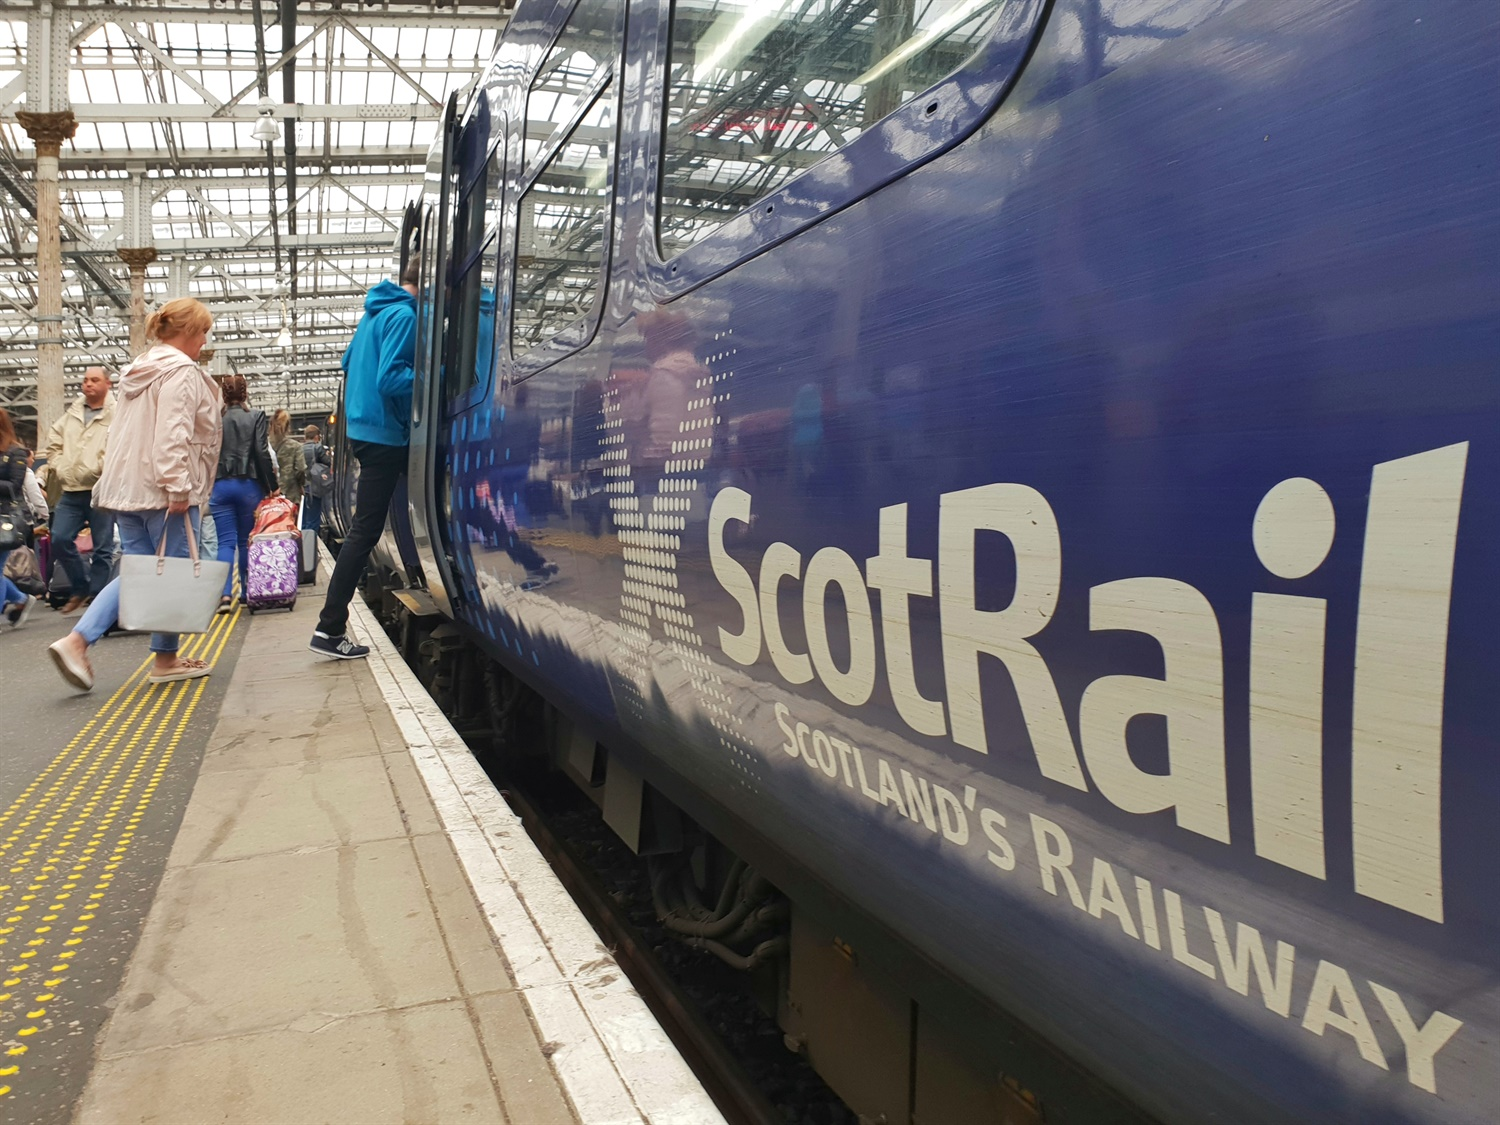 Public sector bidders will be allowed to compete for ScotRail franchise